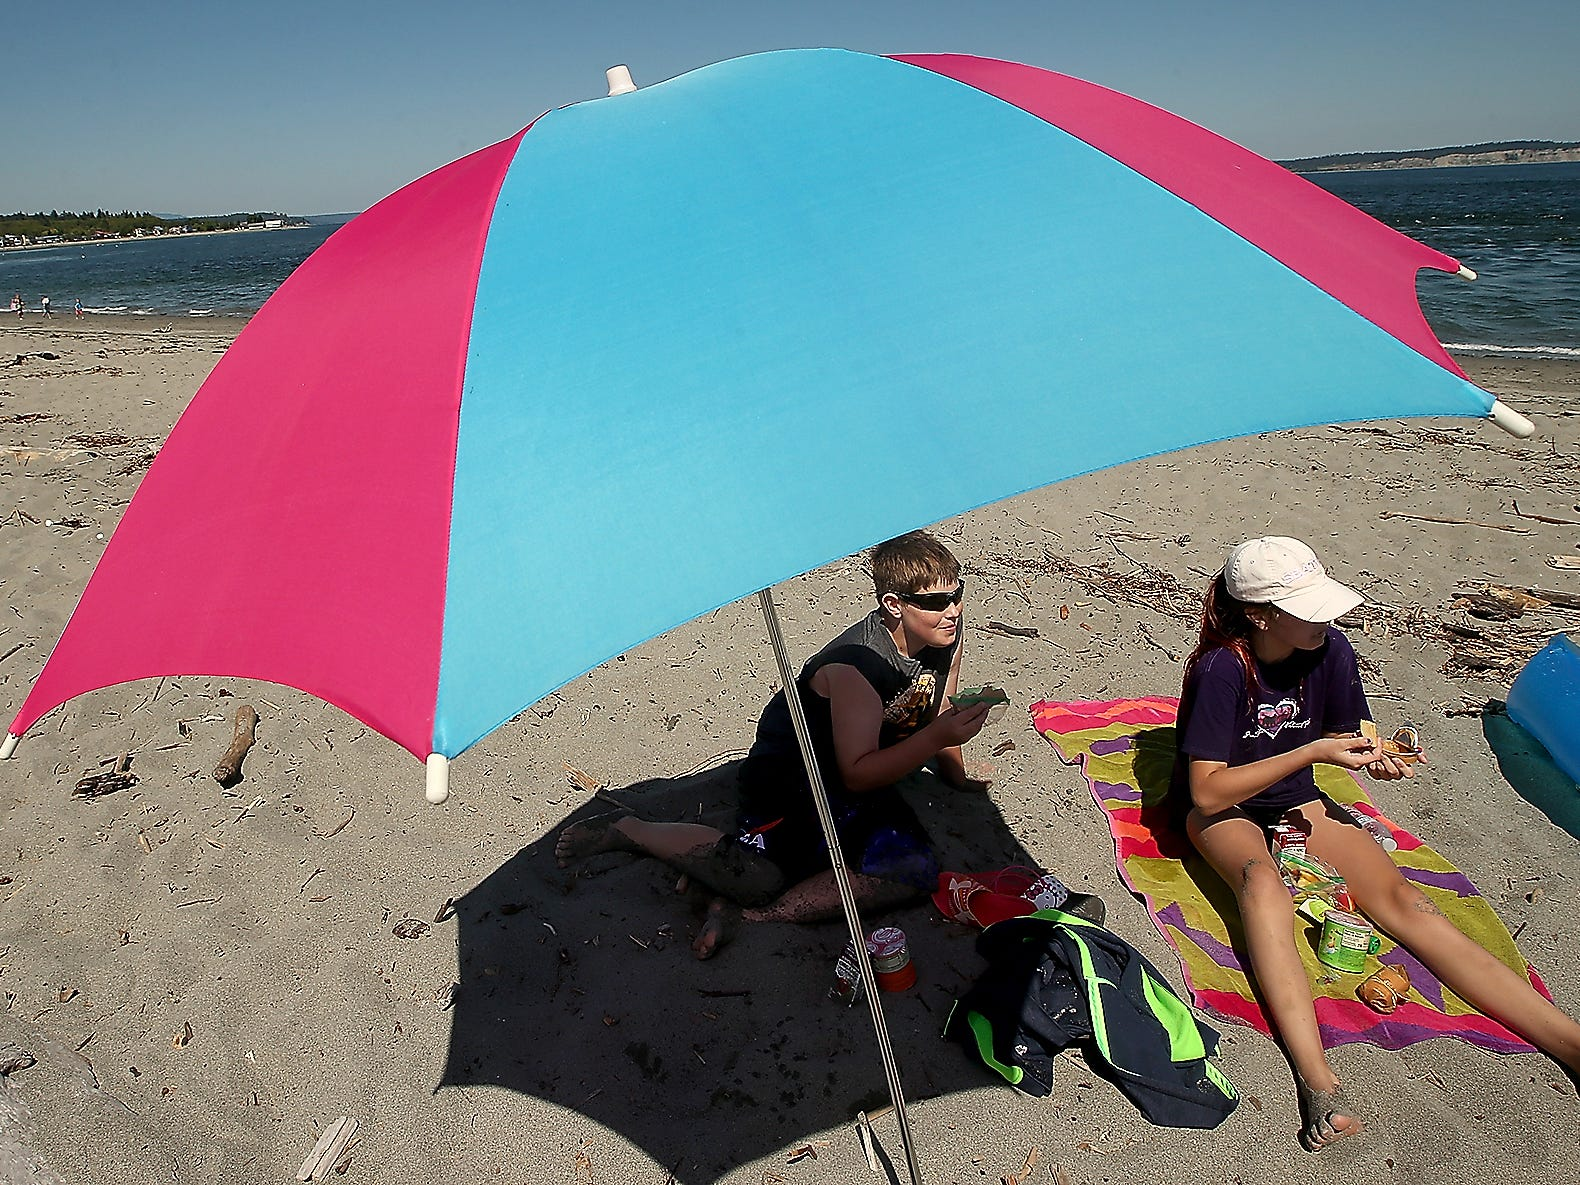 Siblings Tyler, 11, and Ashlee Verkest, 12, eat their lunch near the shade of their beach umbrella at Point No Point in Hansville on Tuesday, July 24, 2018.